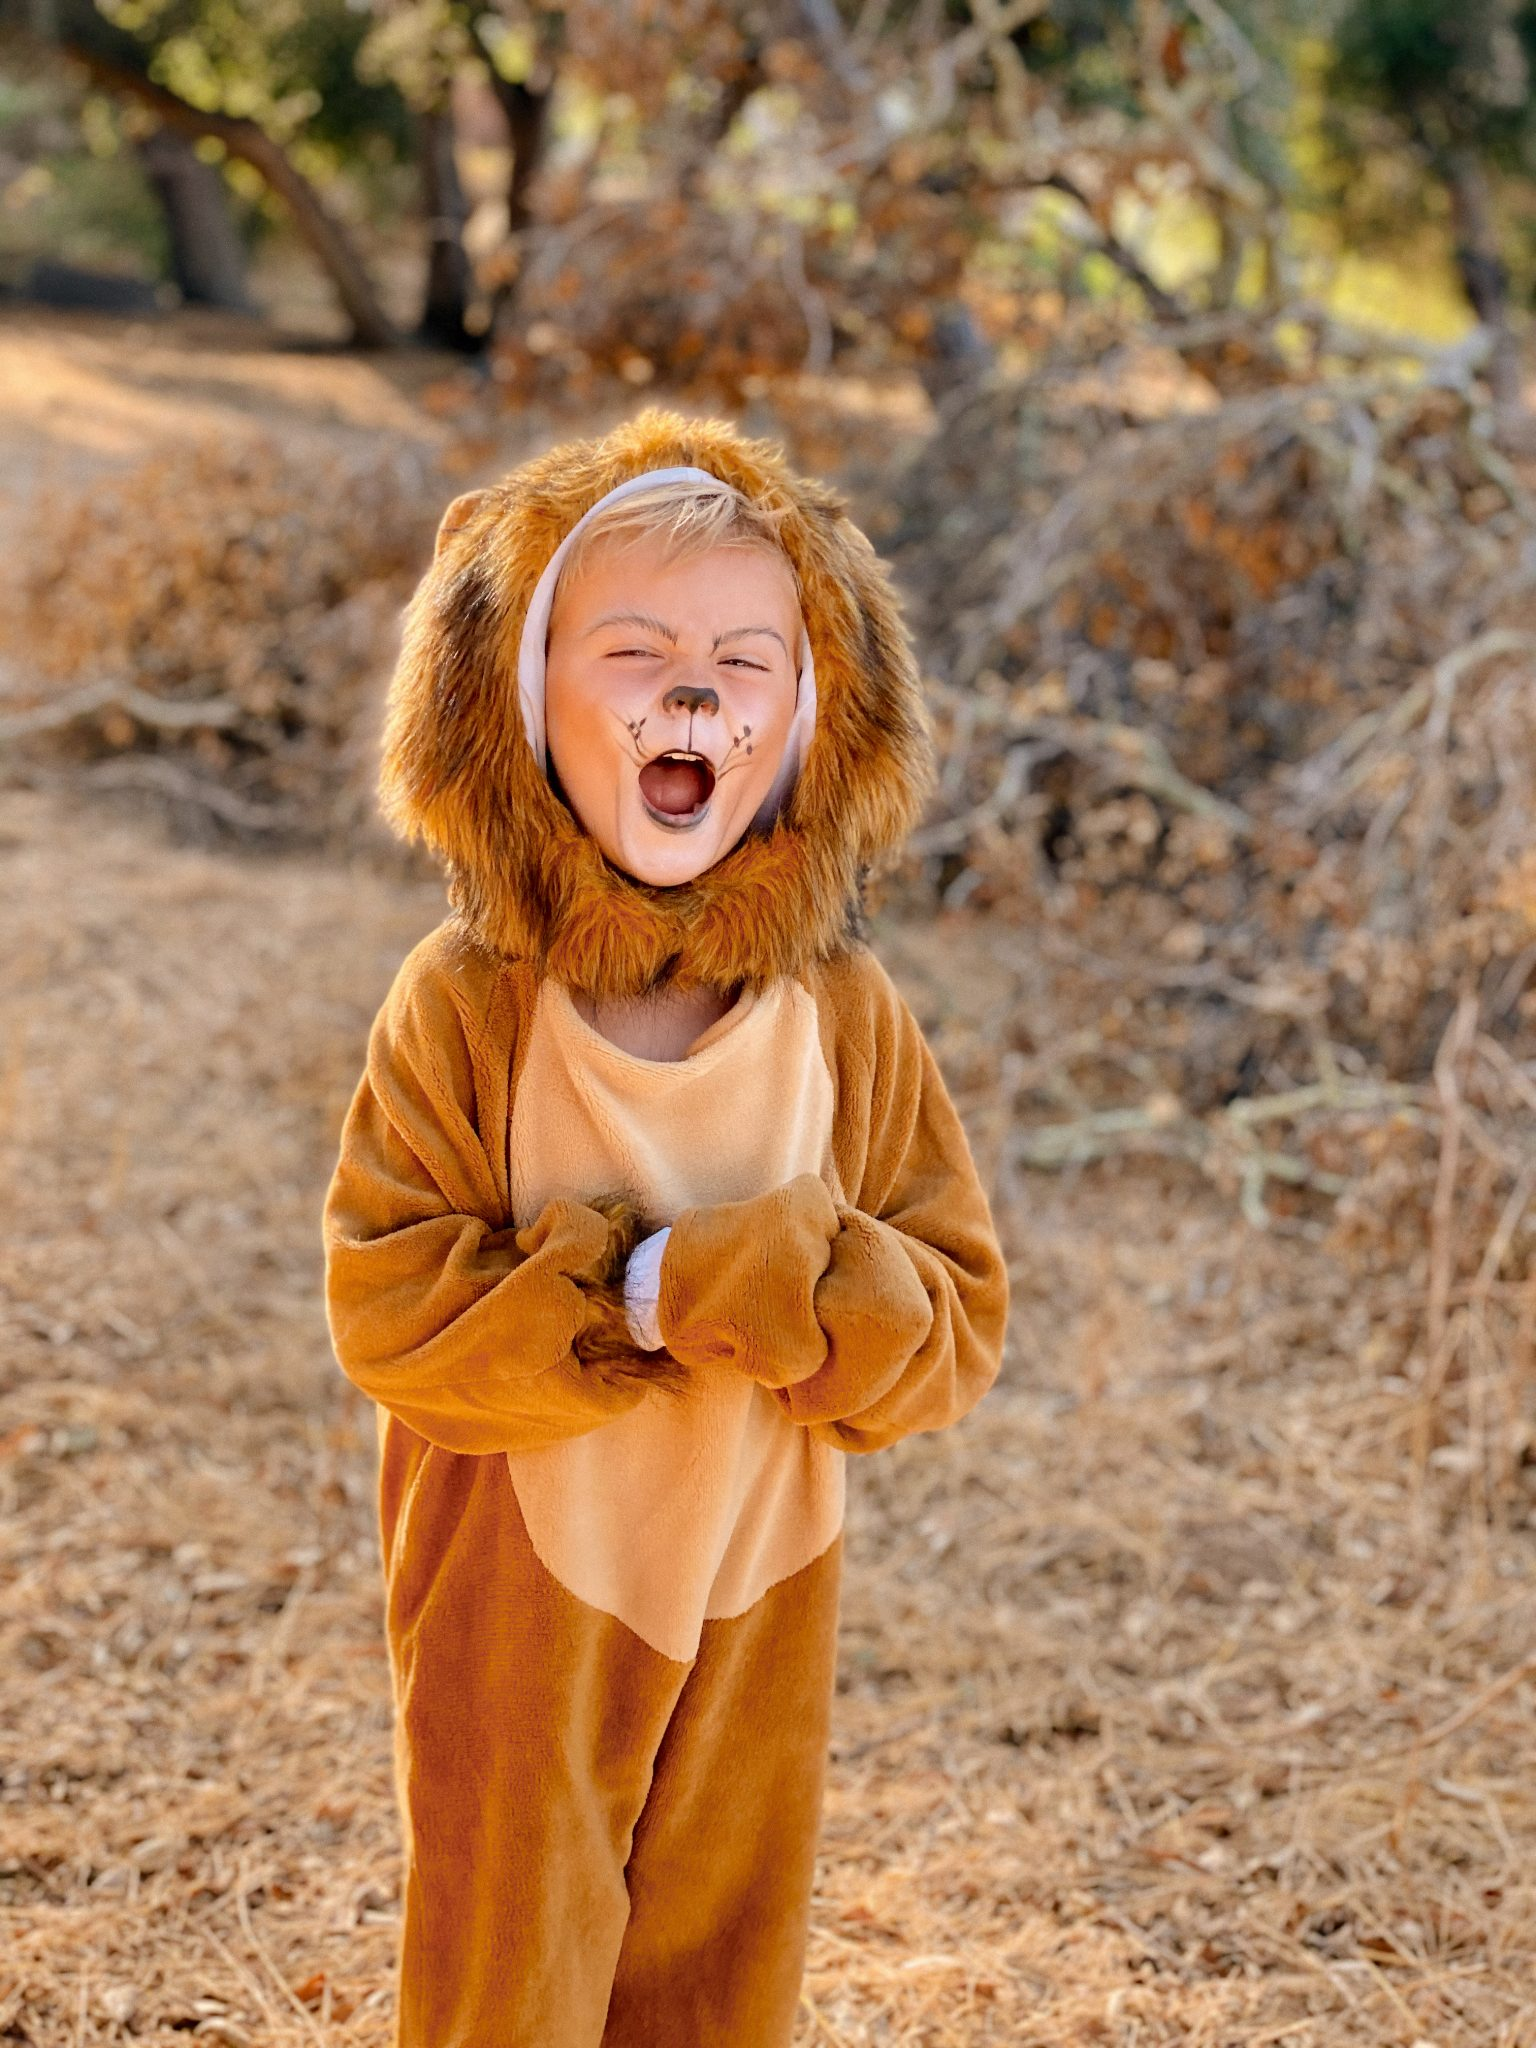 Family Halloween Costumes by popular San Diego lifestyle blog, Navy Grace: image of a boy dressed up as a lion.